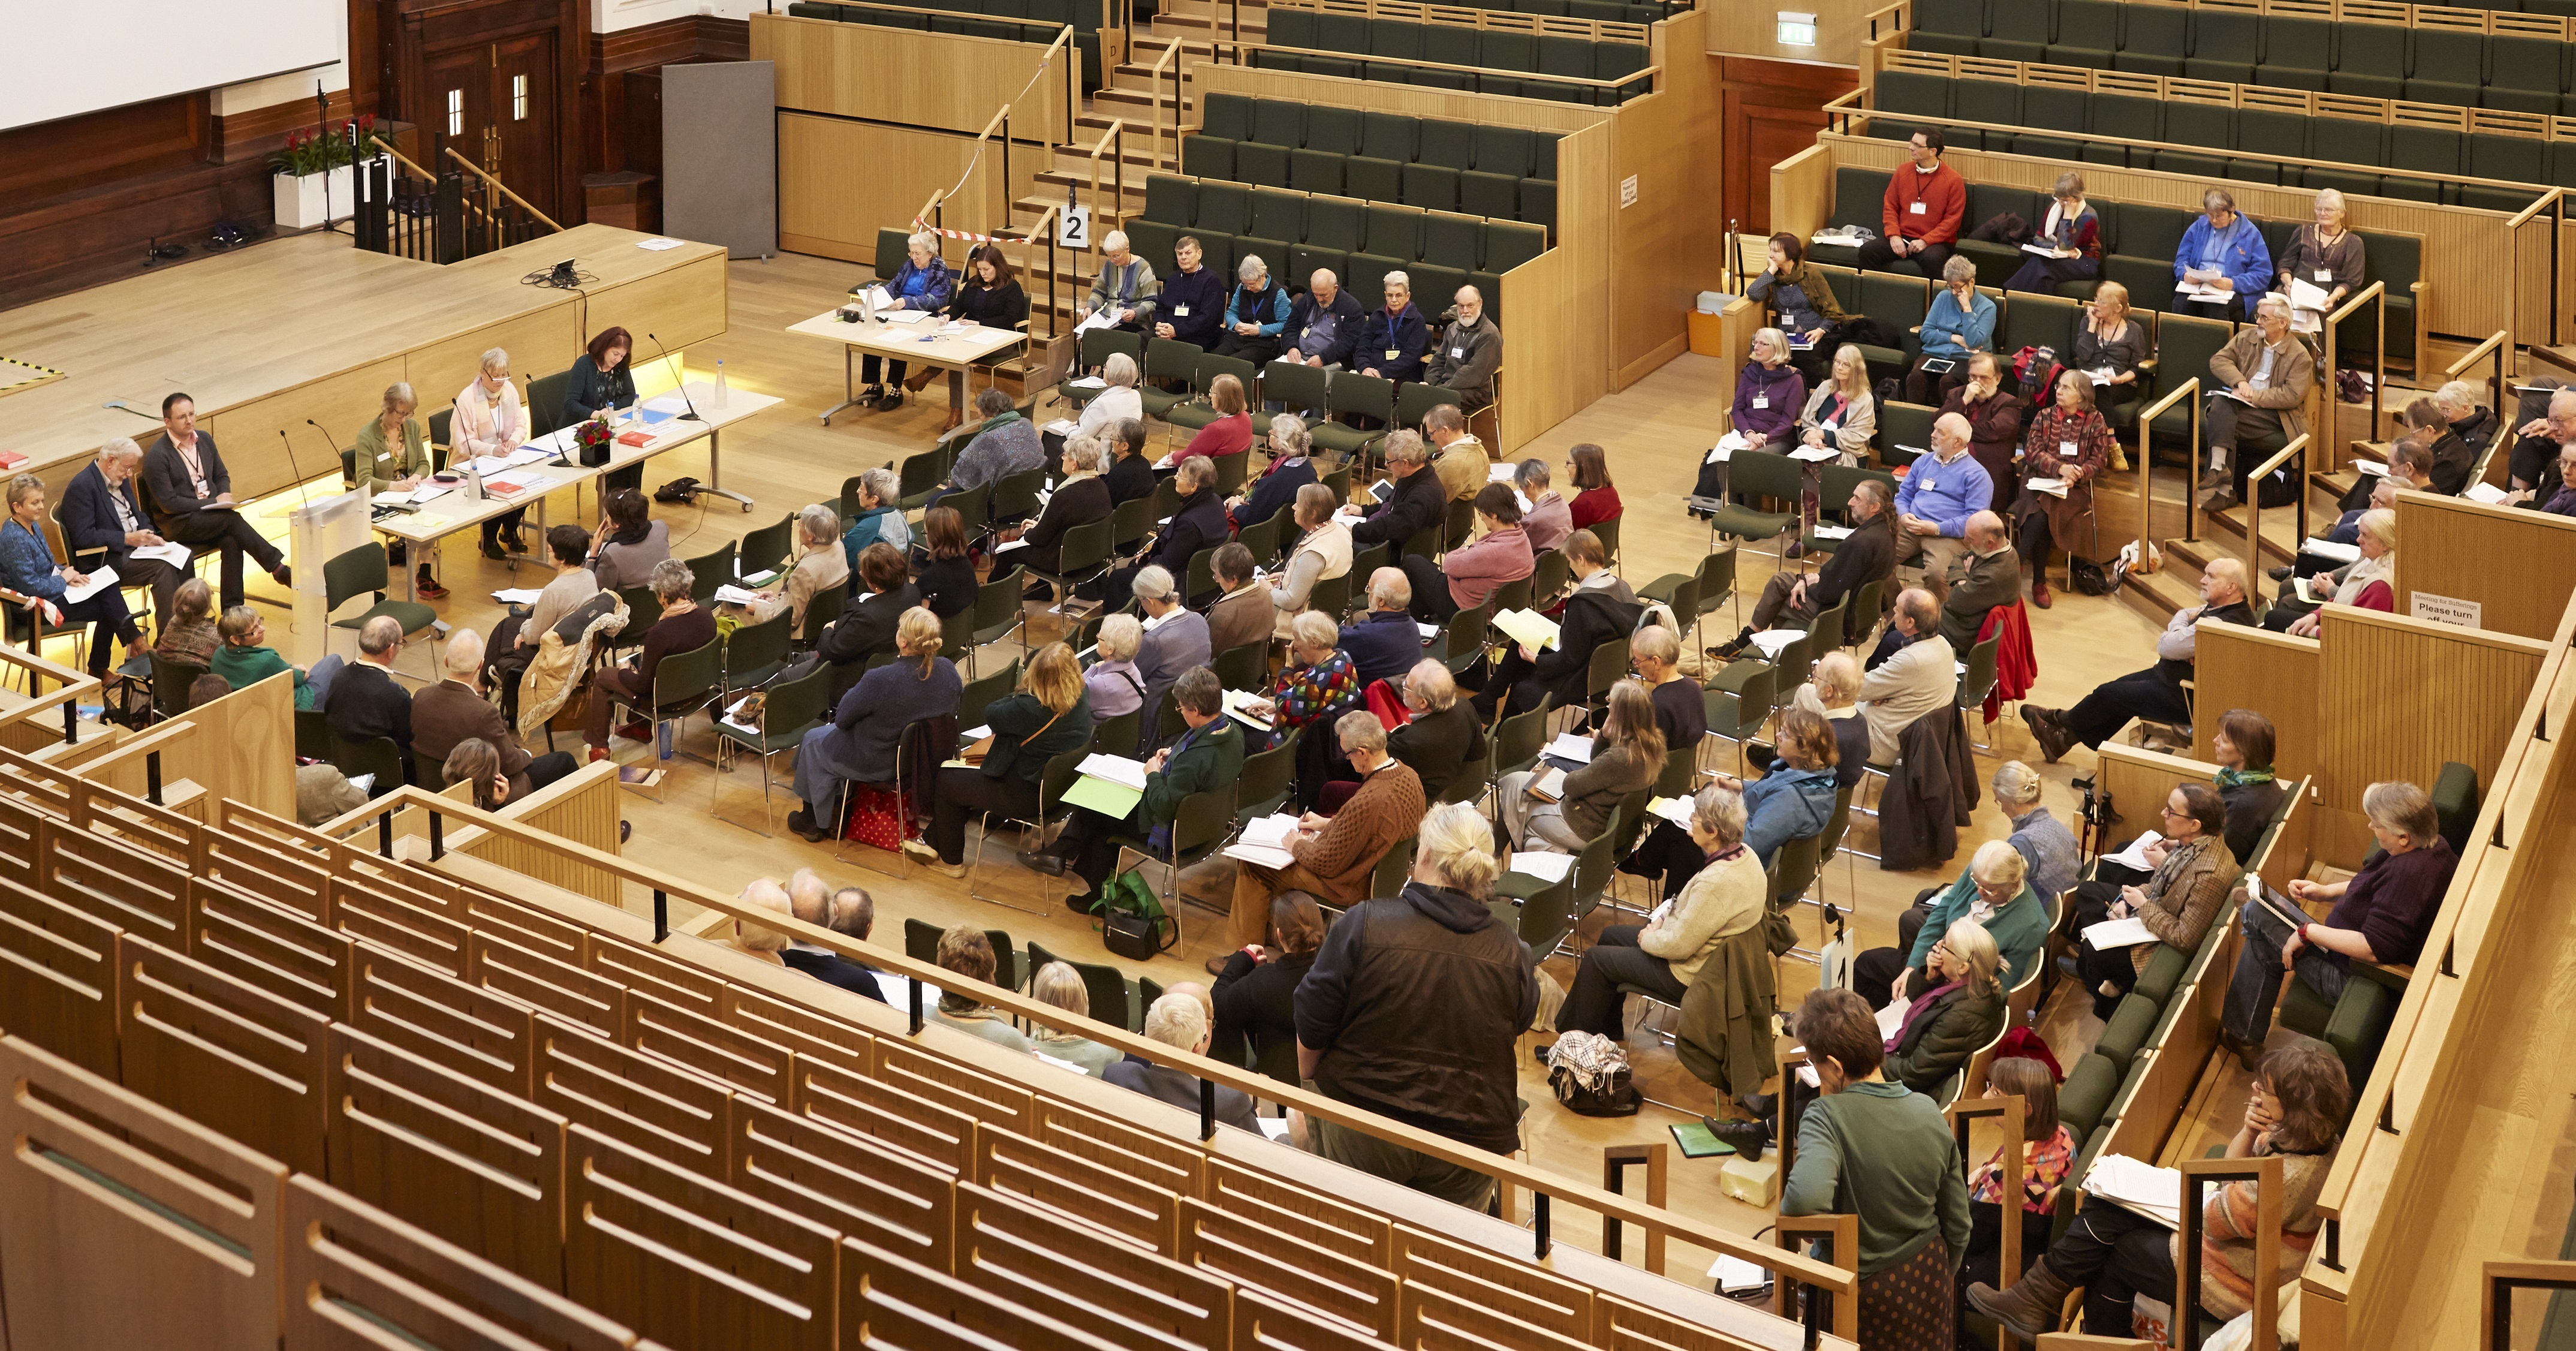 Quakers gathered for Meeting for Sufferings